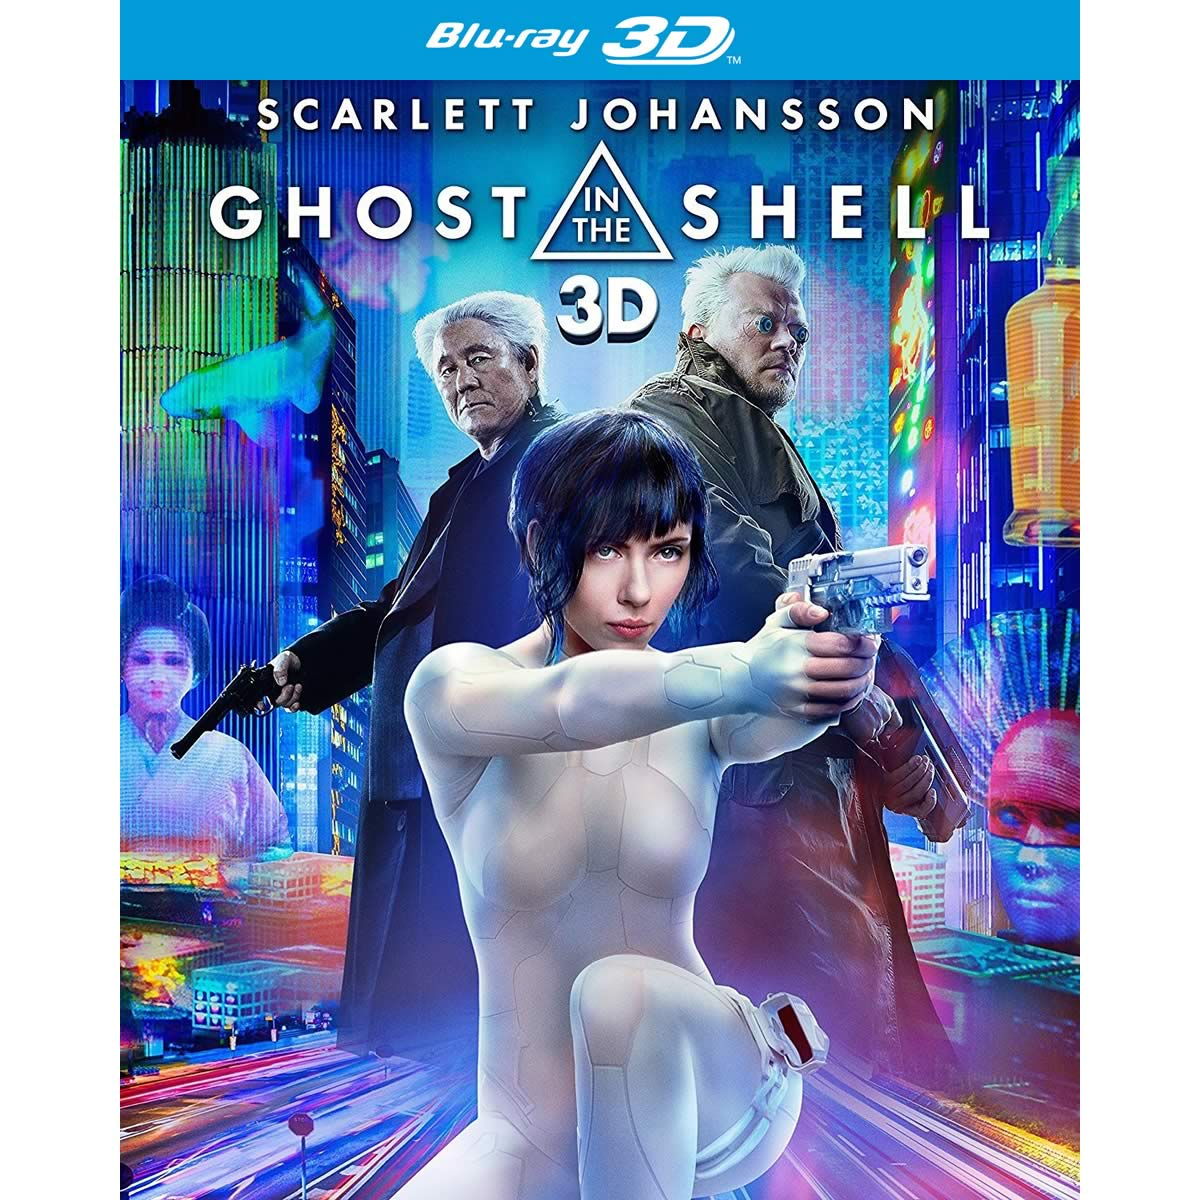 GHOST IN THE SHELL 3D (BLU-RAY 3D/2D)